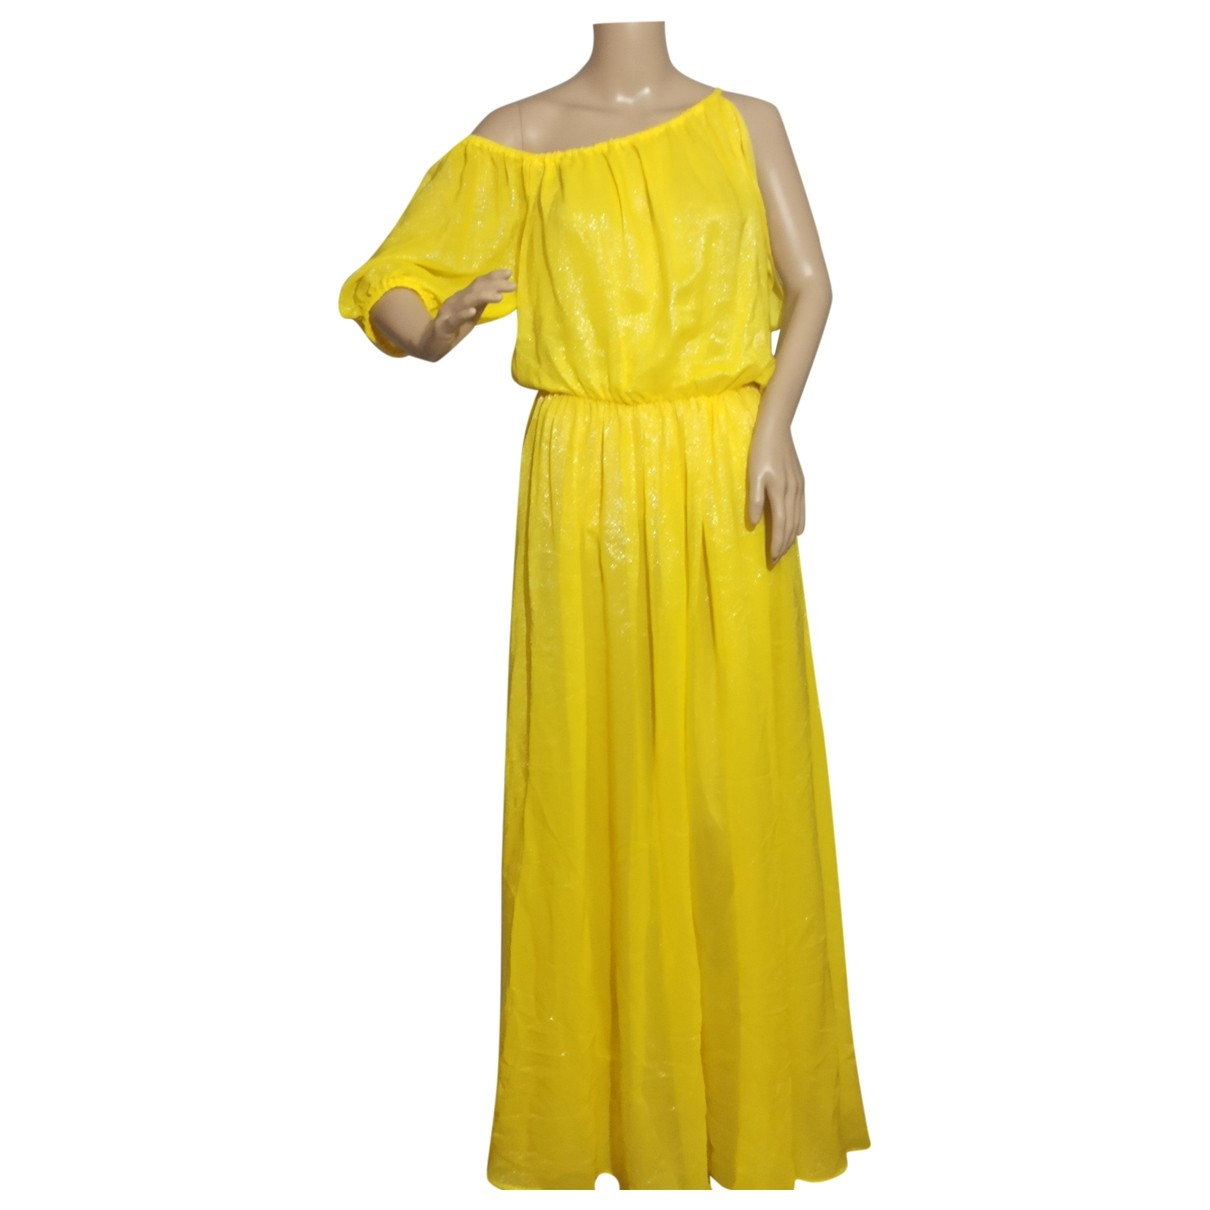 Simona Corsellini \N Yellow dress for Women 42 IT